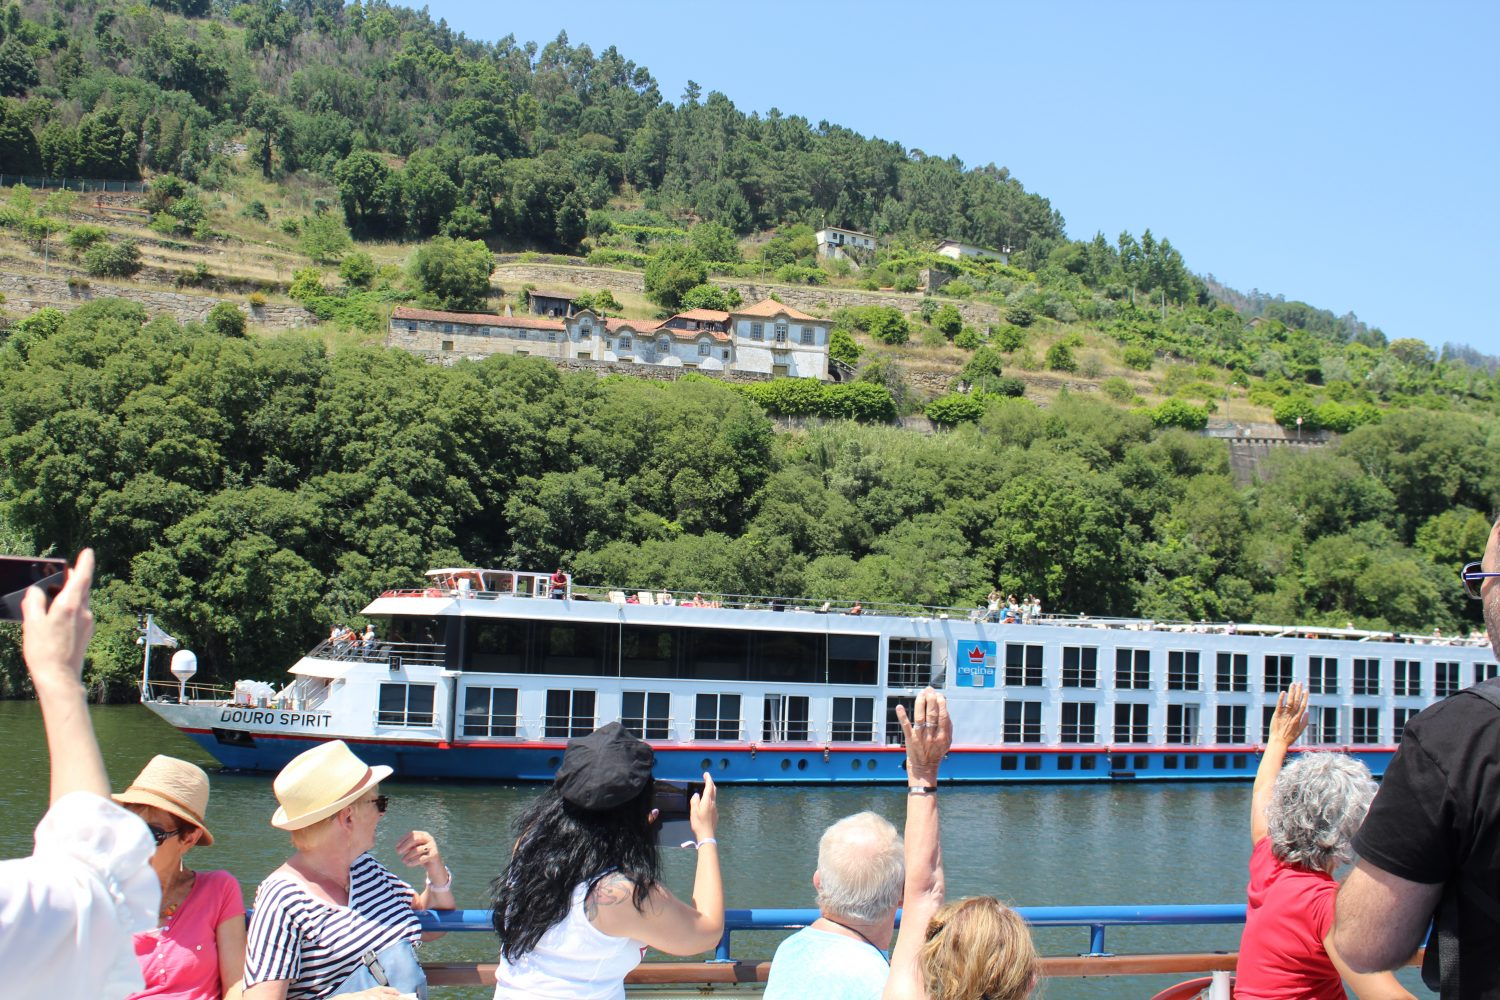 Saying hello to another boat in the Douro River